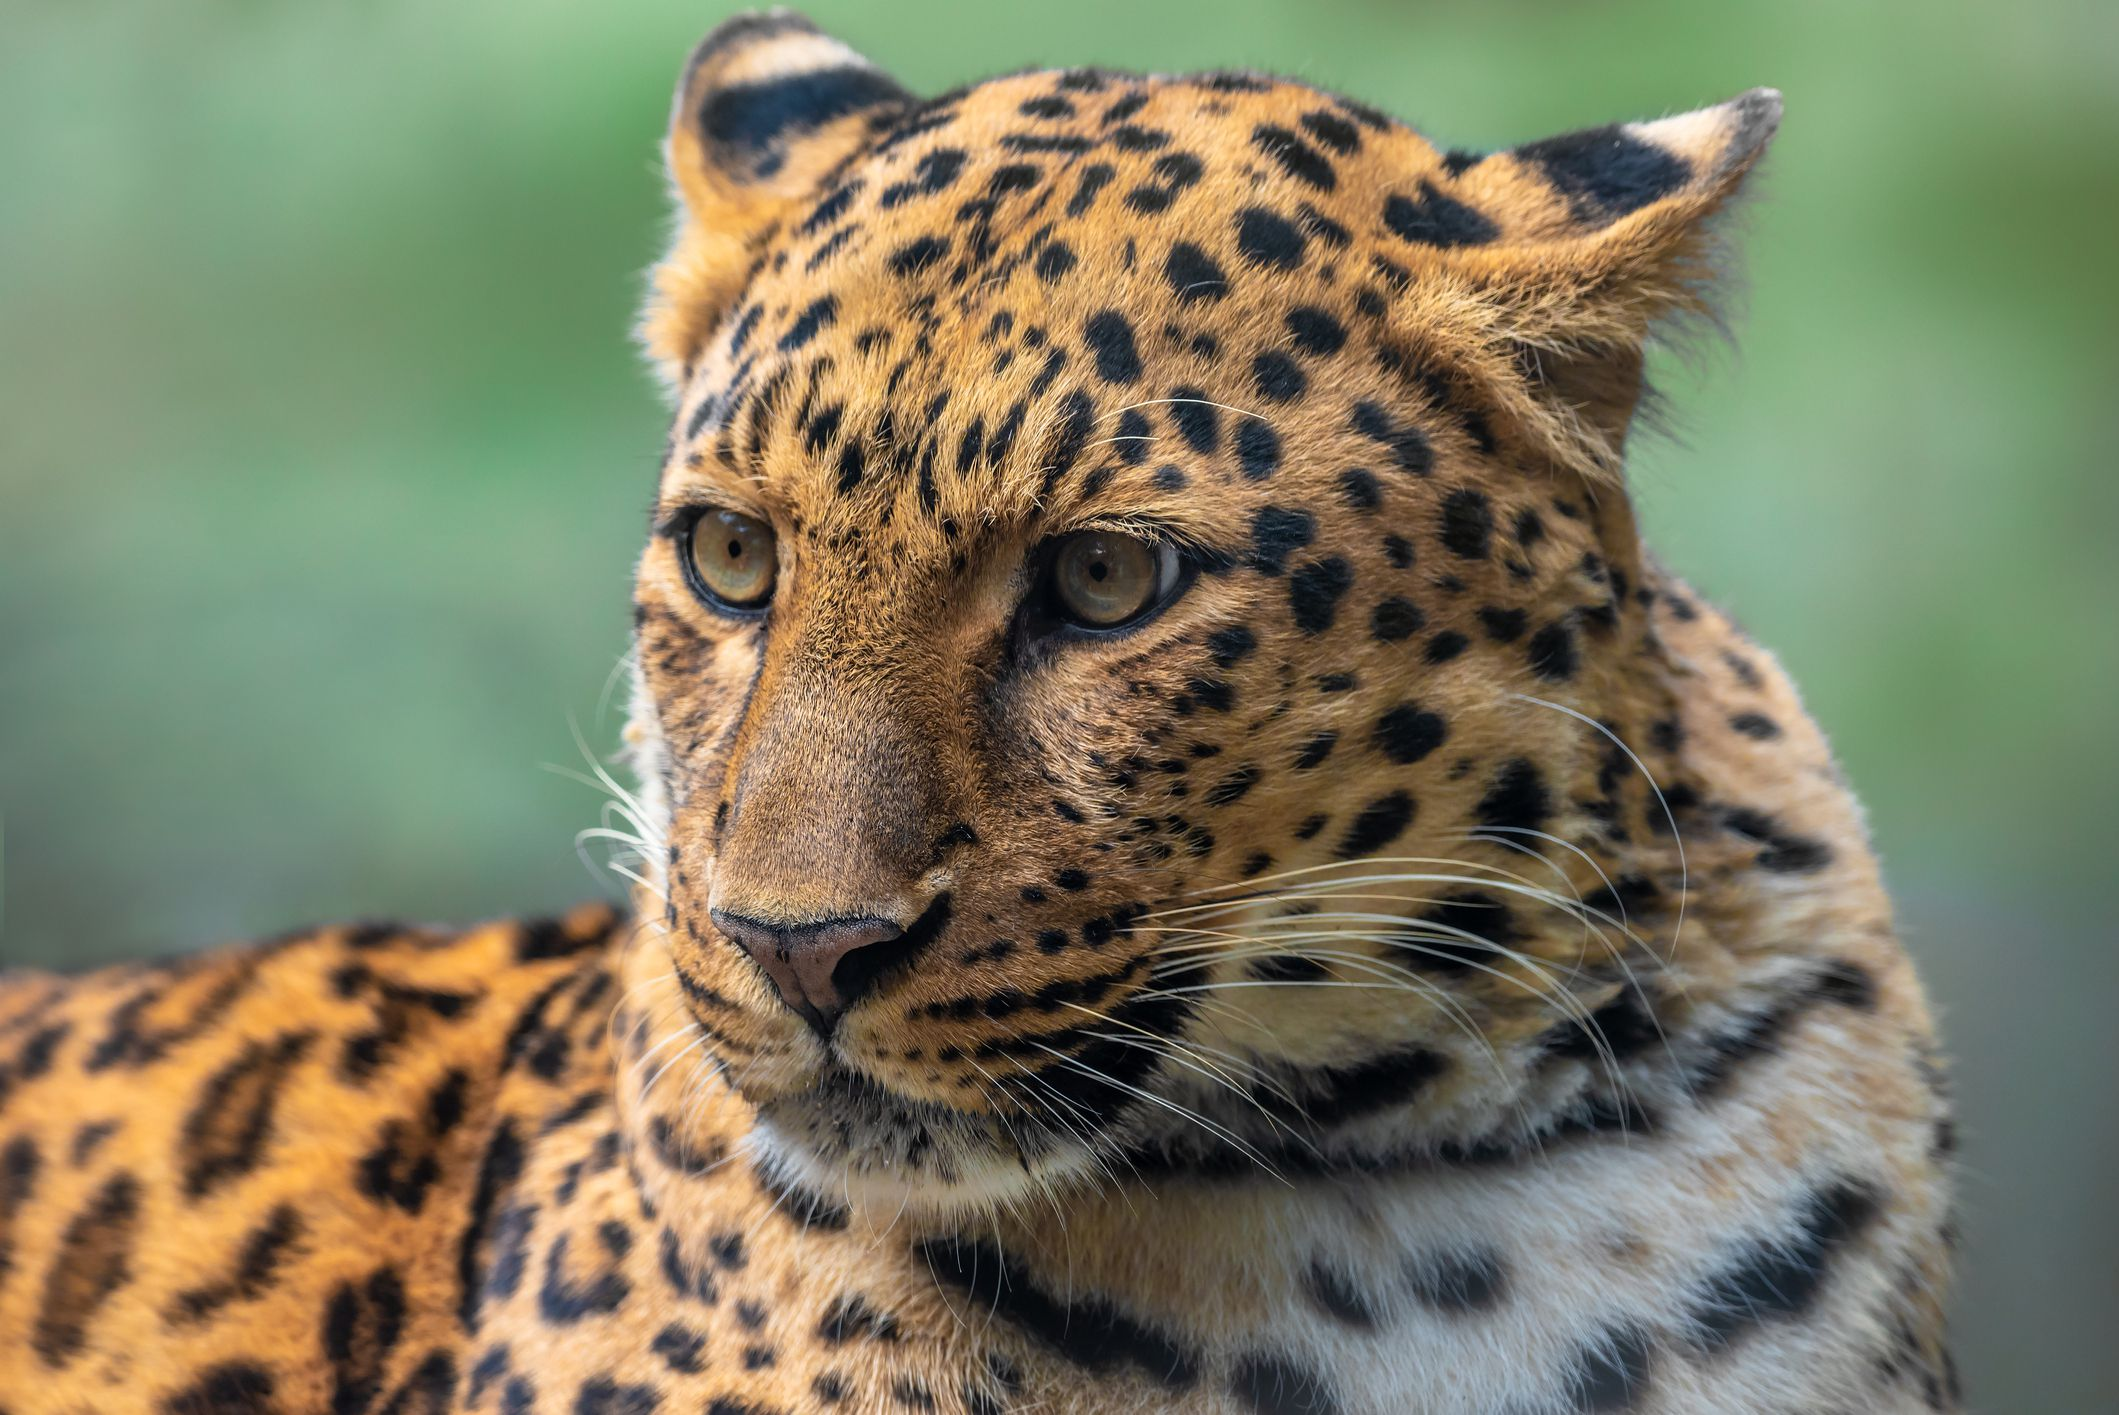 Leopard Population in Northern China is on the Rise